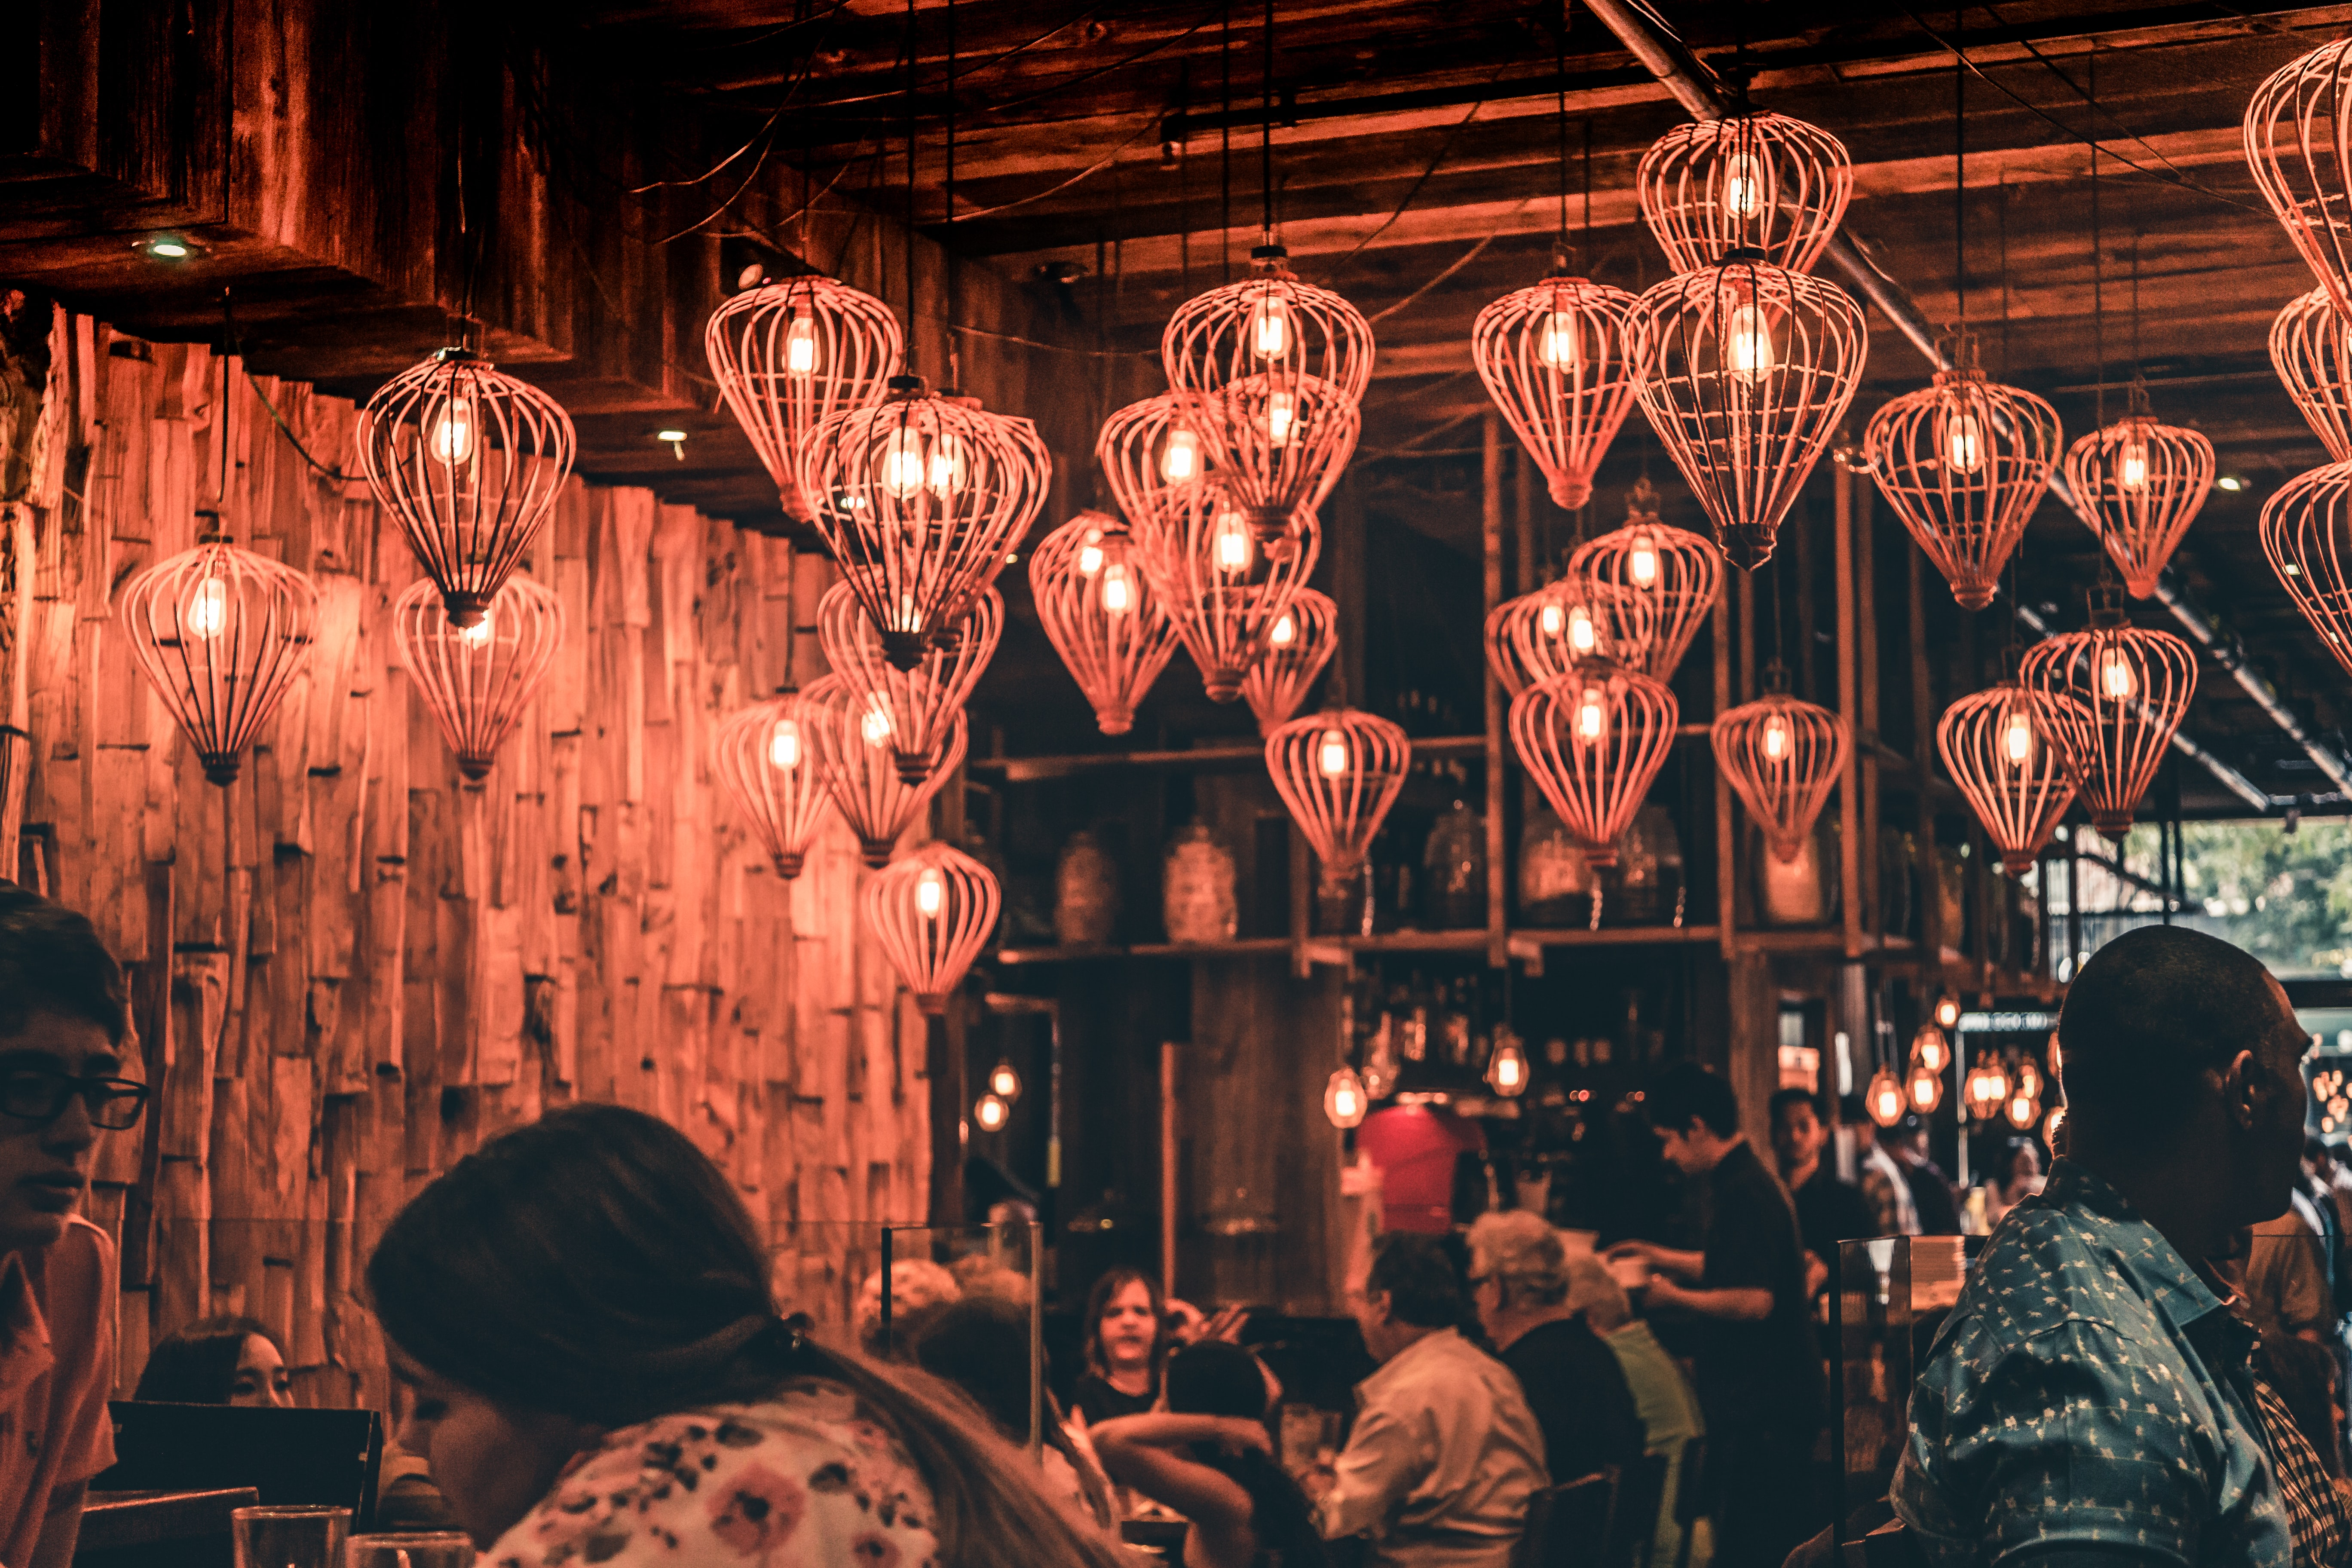 Restaurant interior in urban area with many lights shaped like hot air balloons on the ceiling